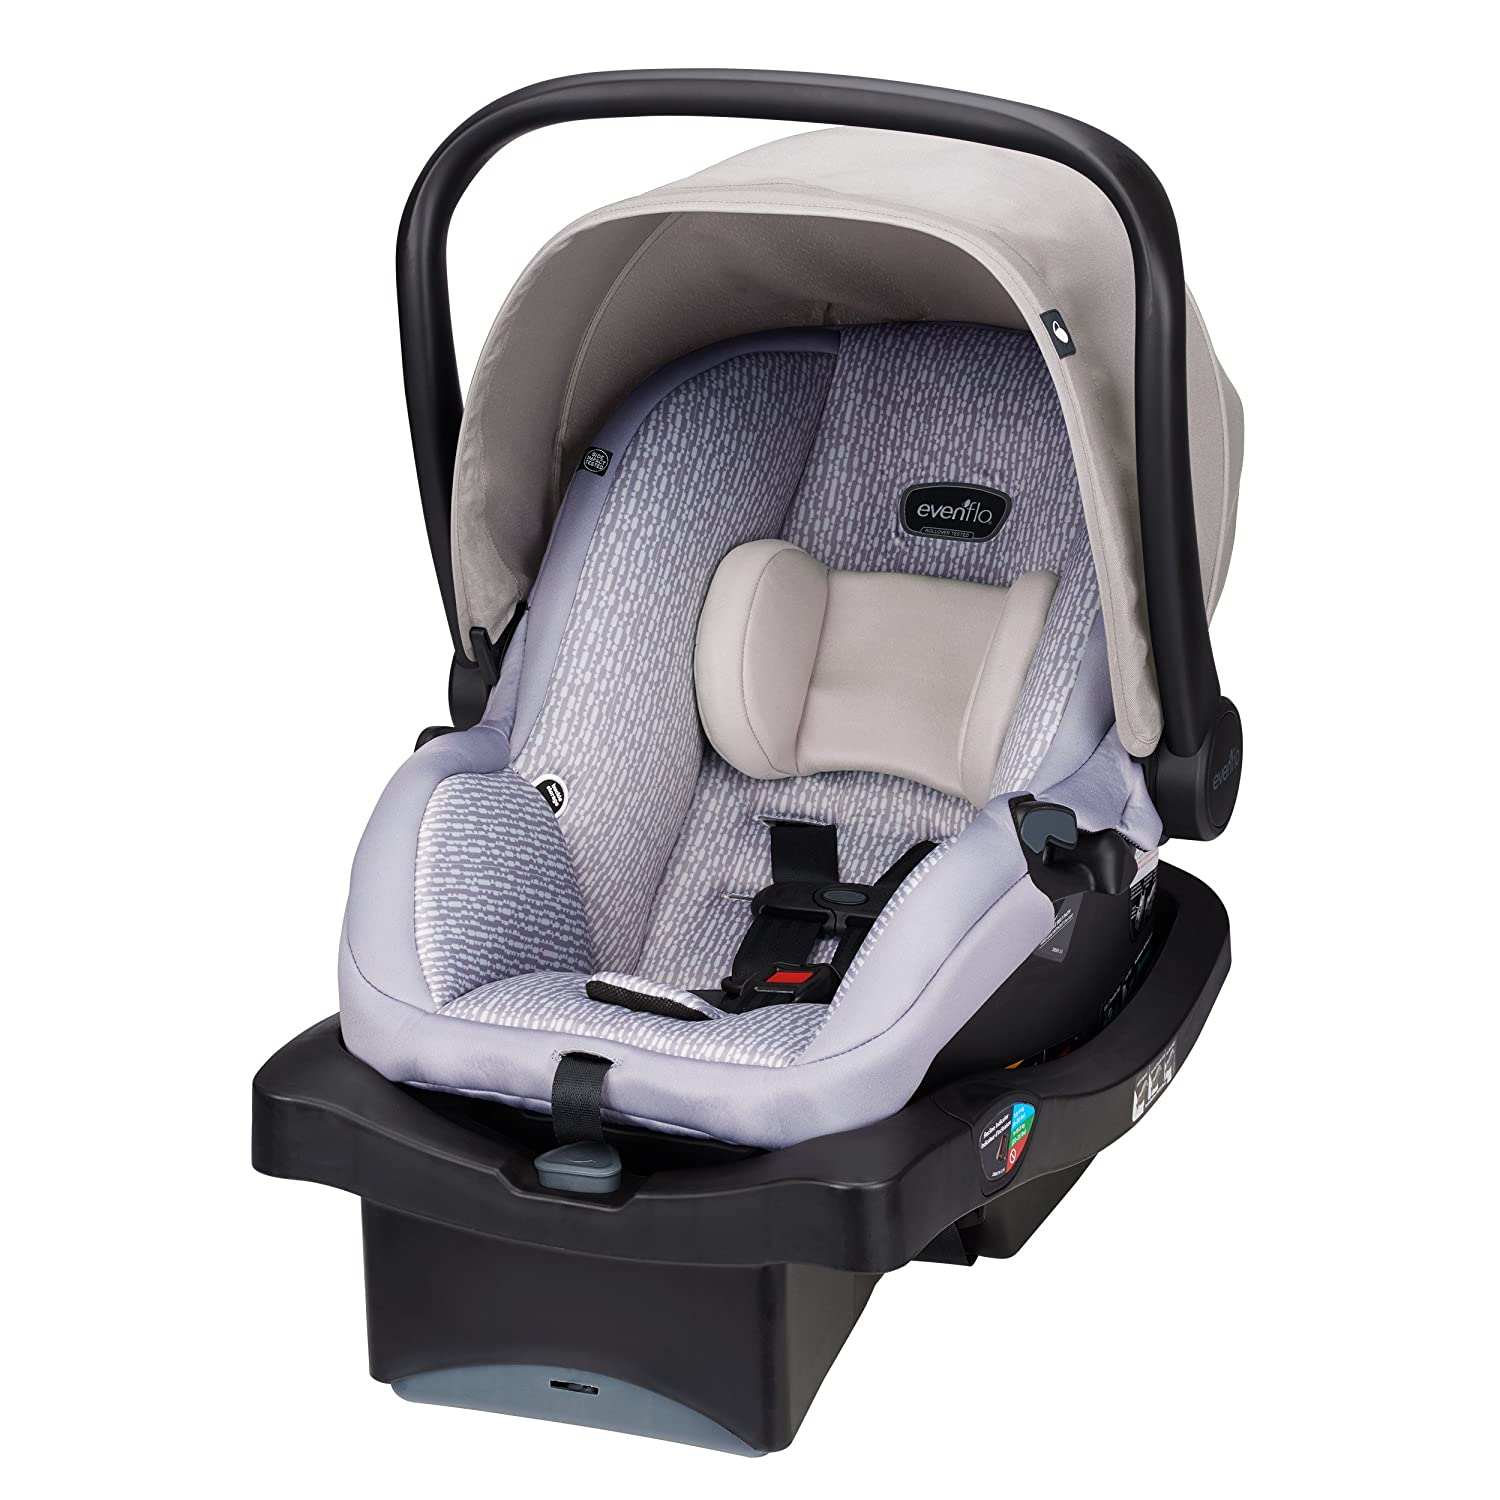 Amazon.com : Evenflo LiteMax 35 Infant Car Seat, Riverstone : Baby